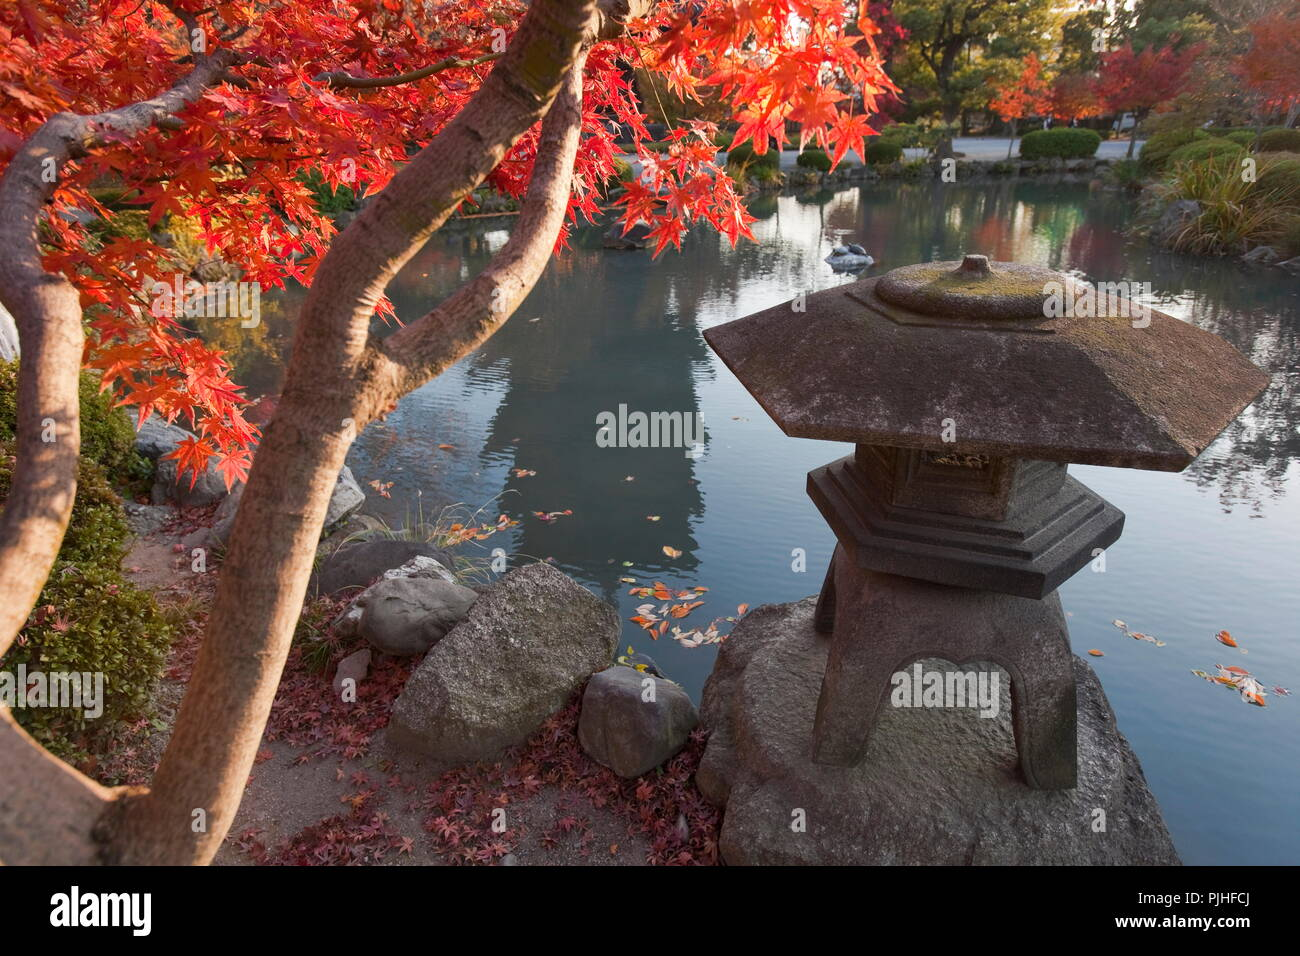 Japan, Central Kyoto, Traditional Toro Stone Lantern Standing At The Edge  Of The Garden Pond (with A Reflection Of The Wooden Five Storied Pagoda)  Amidst ...